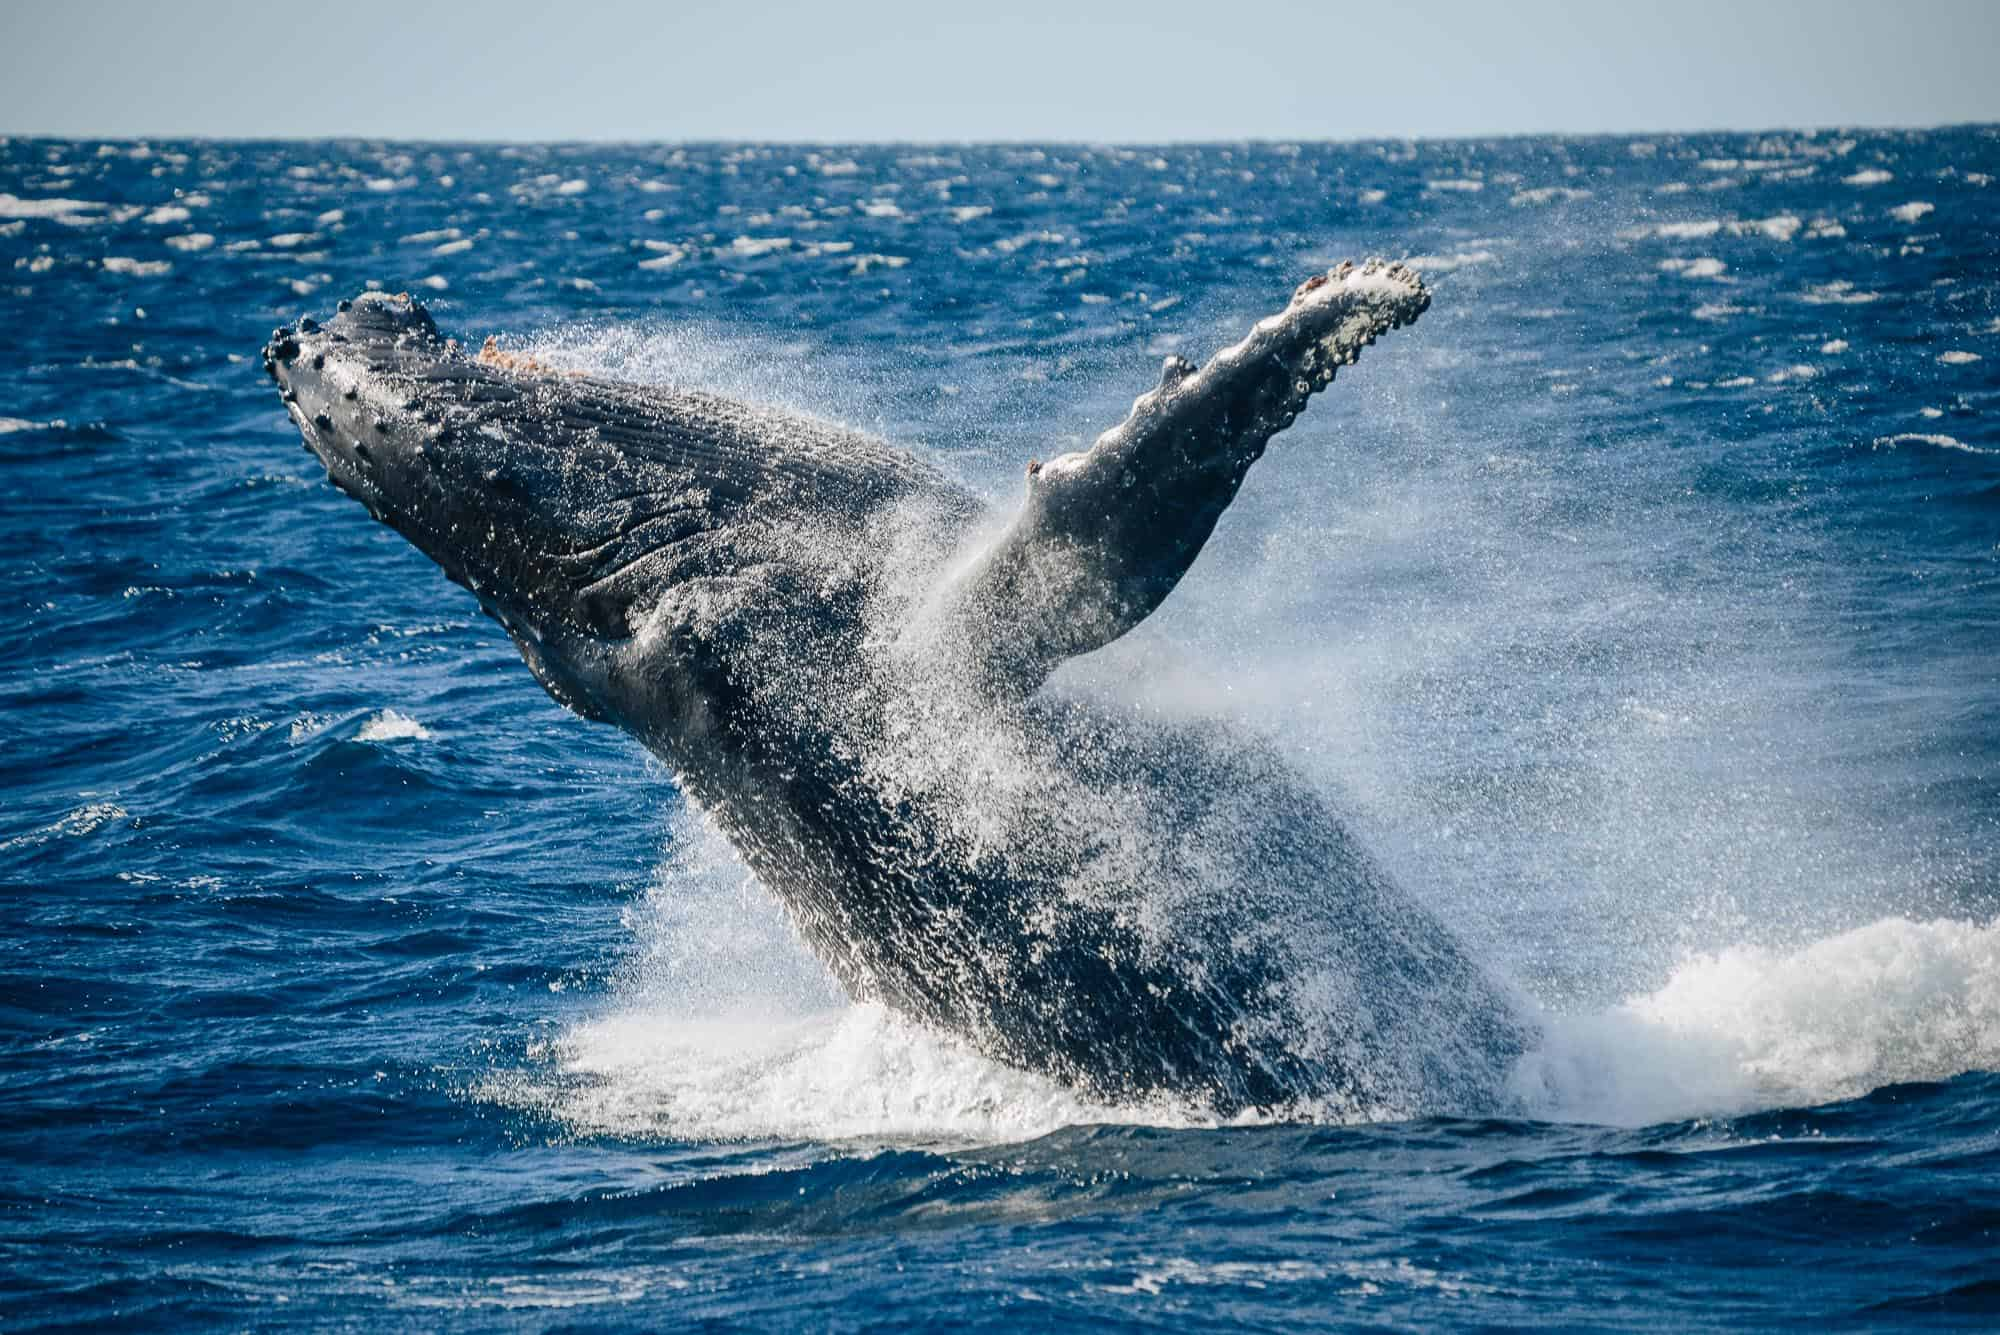 whale watching jervis bay, whale watching in jervis bay, whale watching huskisson, dolphin watch jervis bay, jervis bay cruises, dolphin watch jervis bay, jervis bay whales, jervis bay cruises, jervis bay